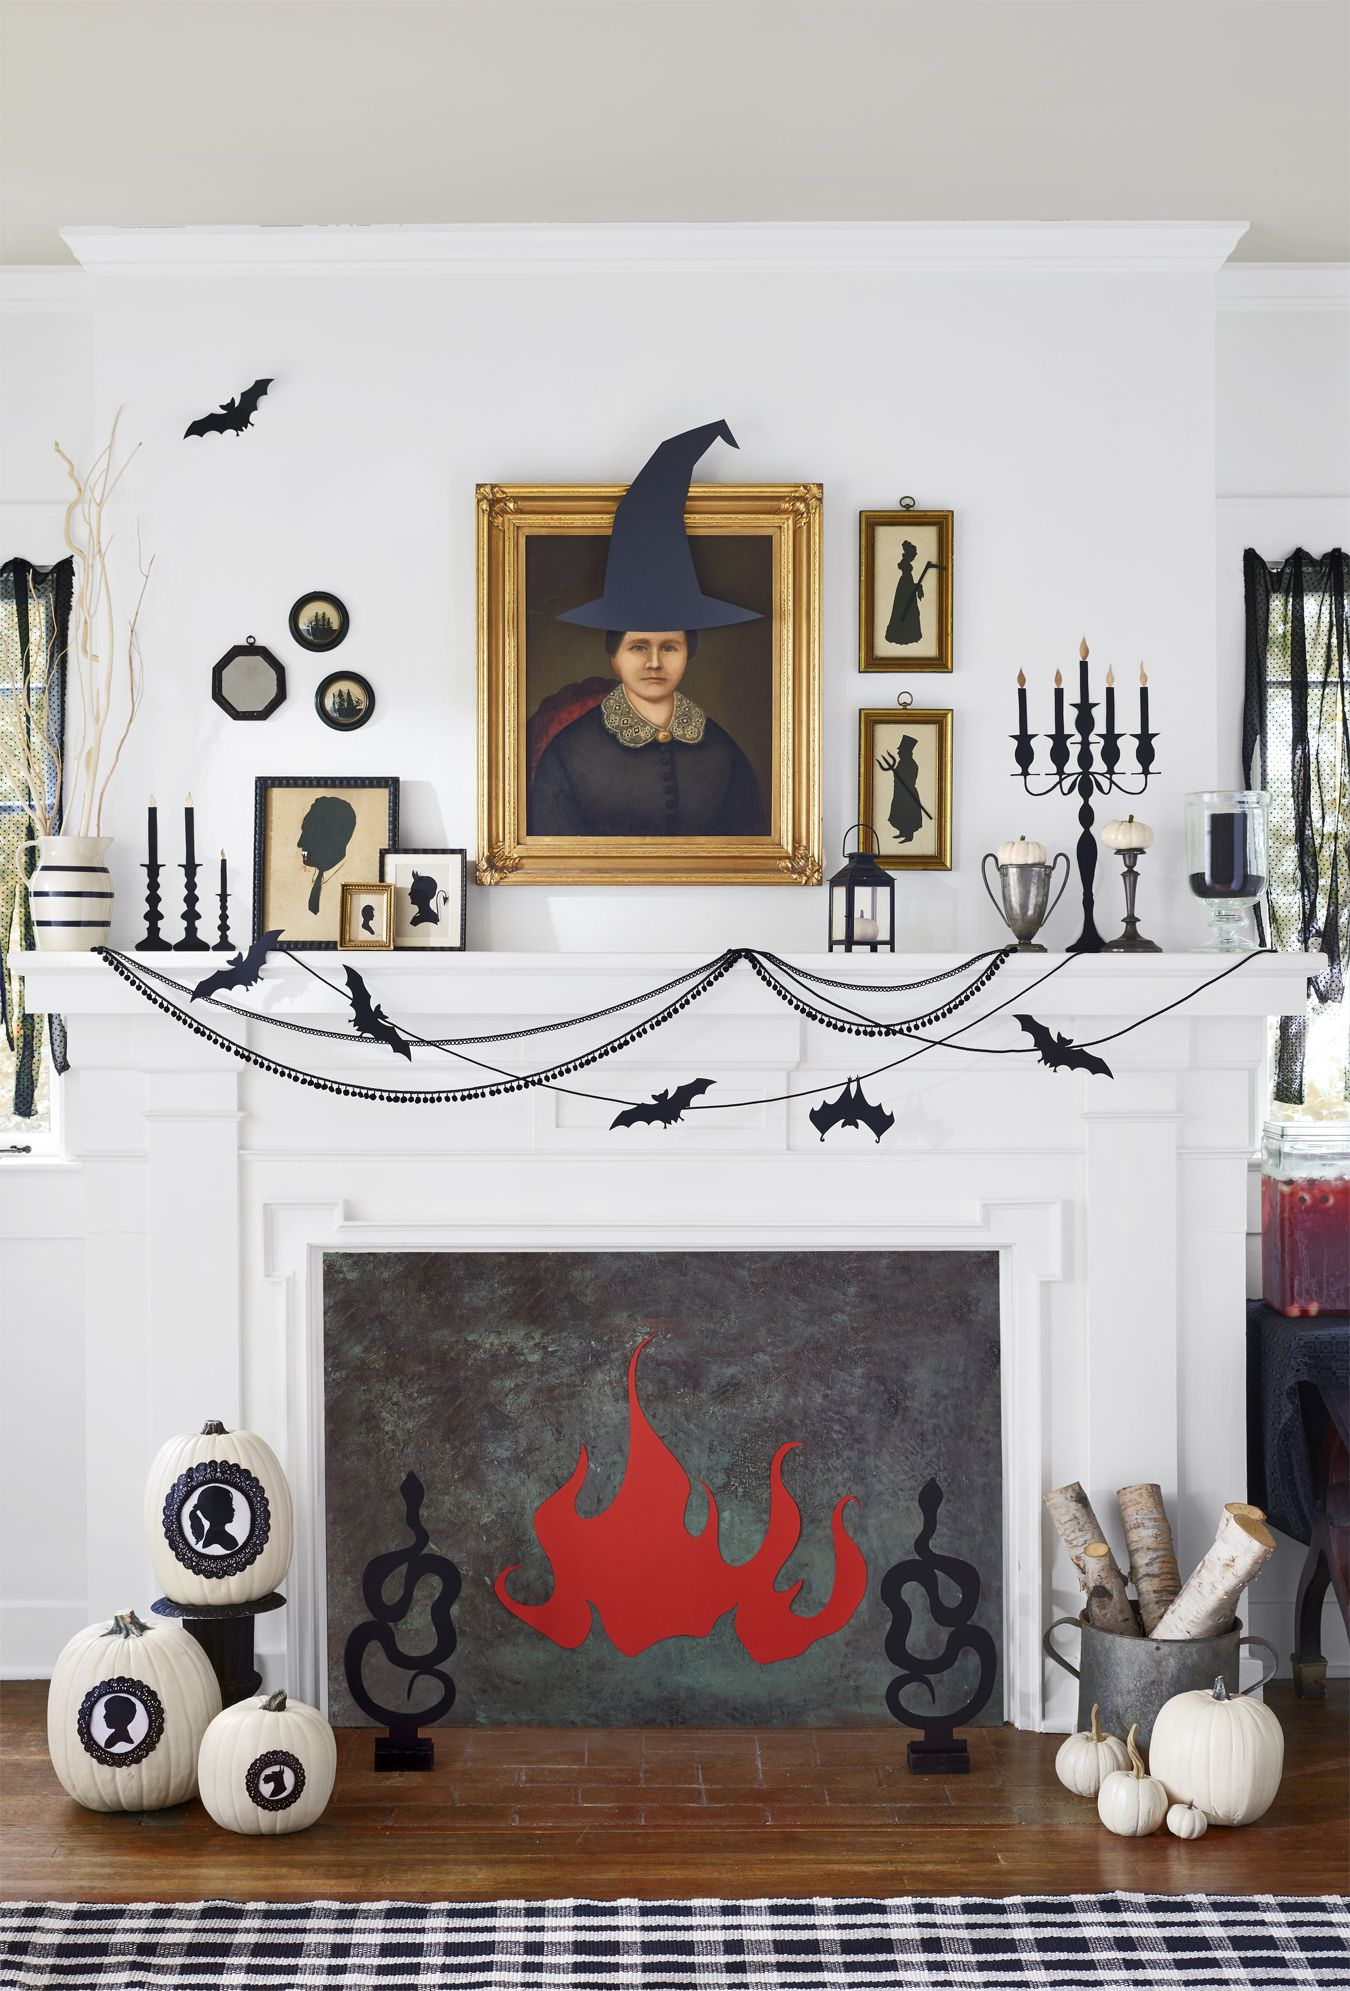 45 Fun Halloween Party Decorating Ideas - Spooky Halloween Party Decor